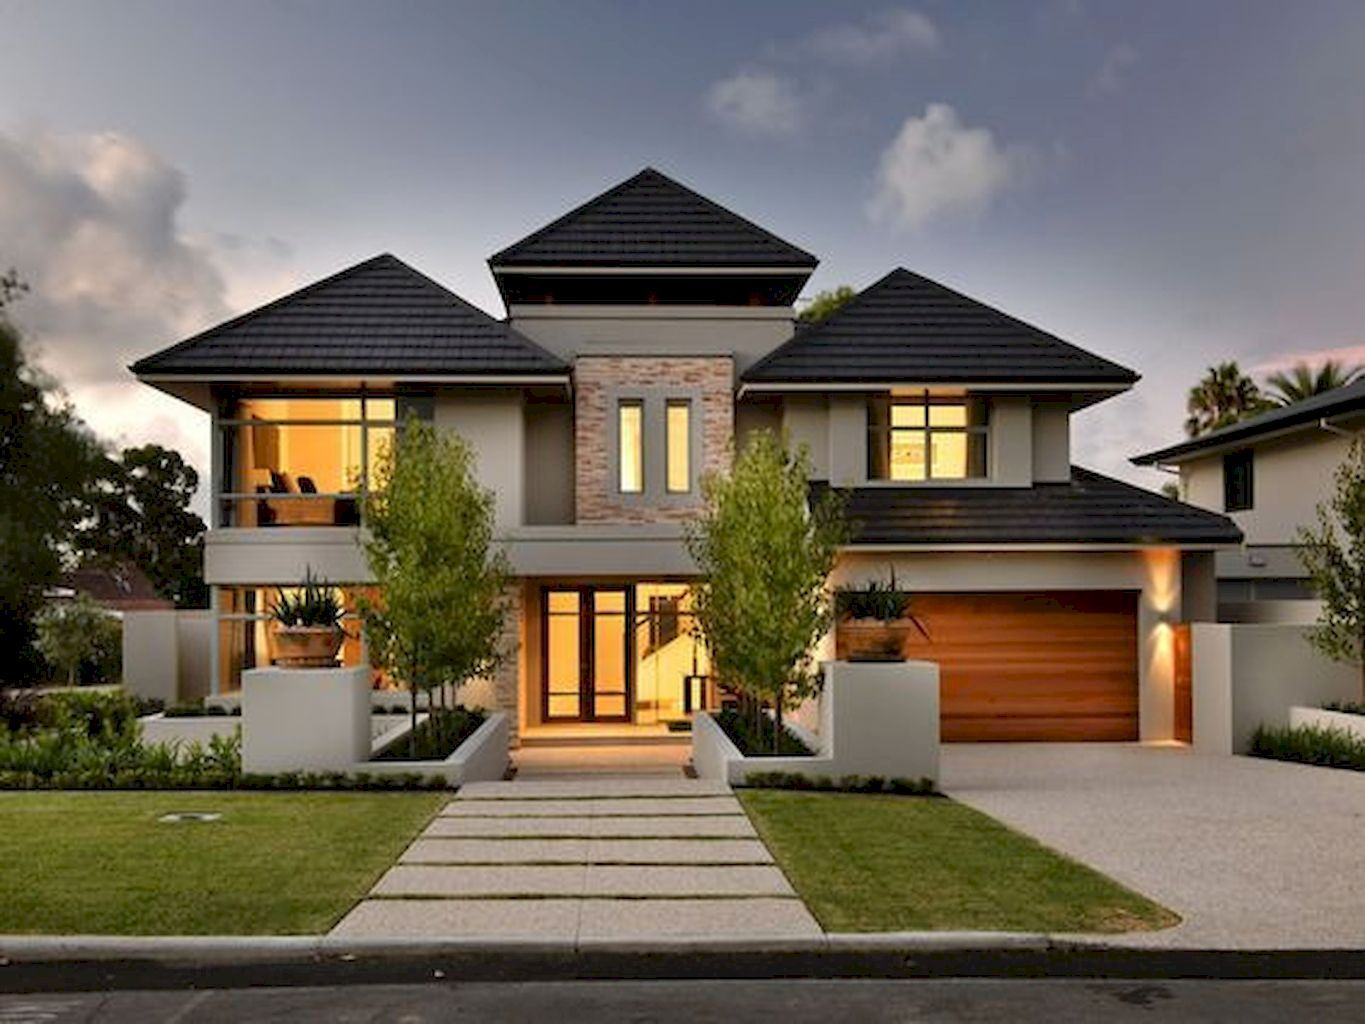 Shocking Nice Portray Concepts To Make Your Residence Look Higher Facade House Two Story House Design Classic House Exterior